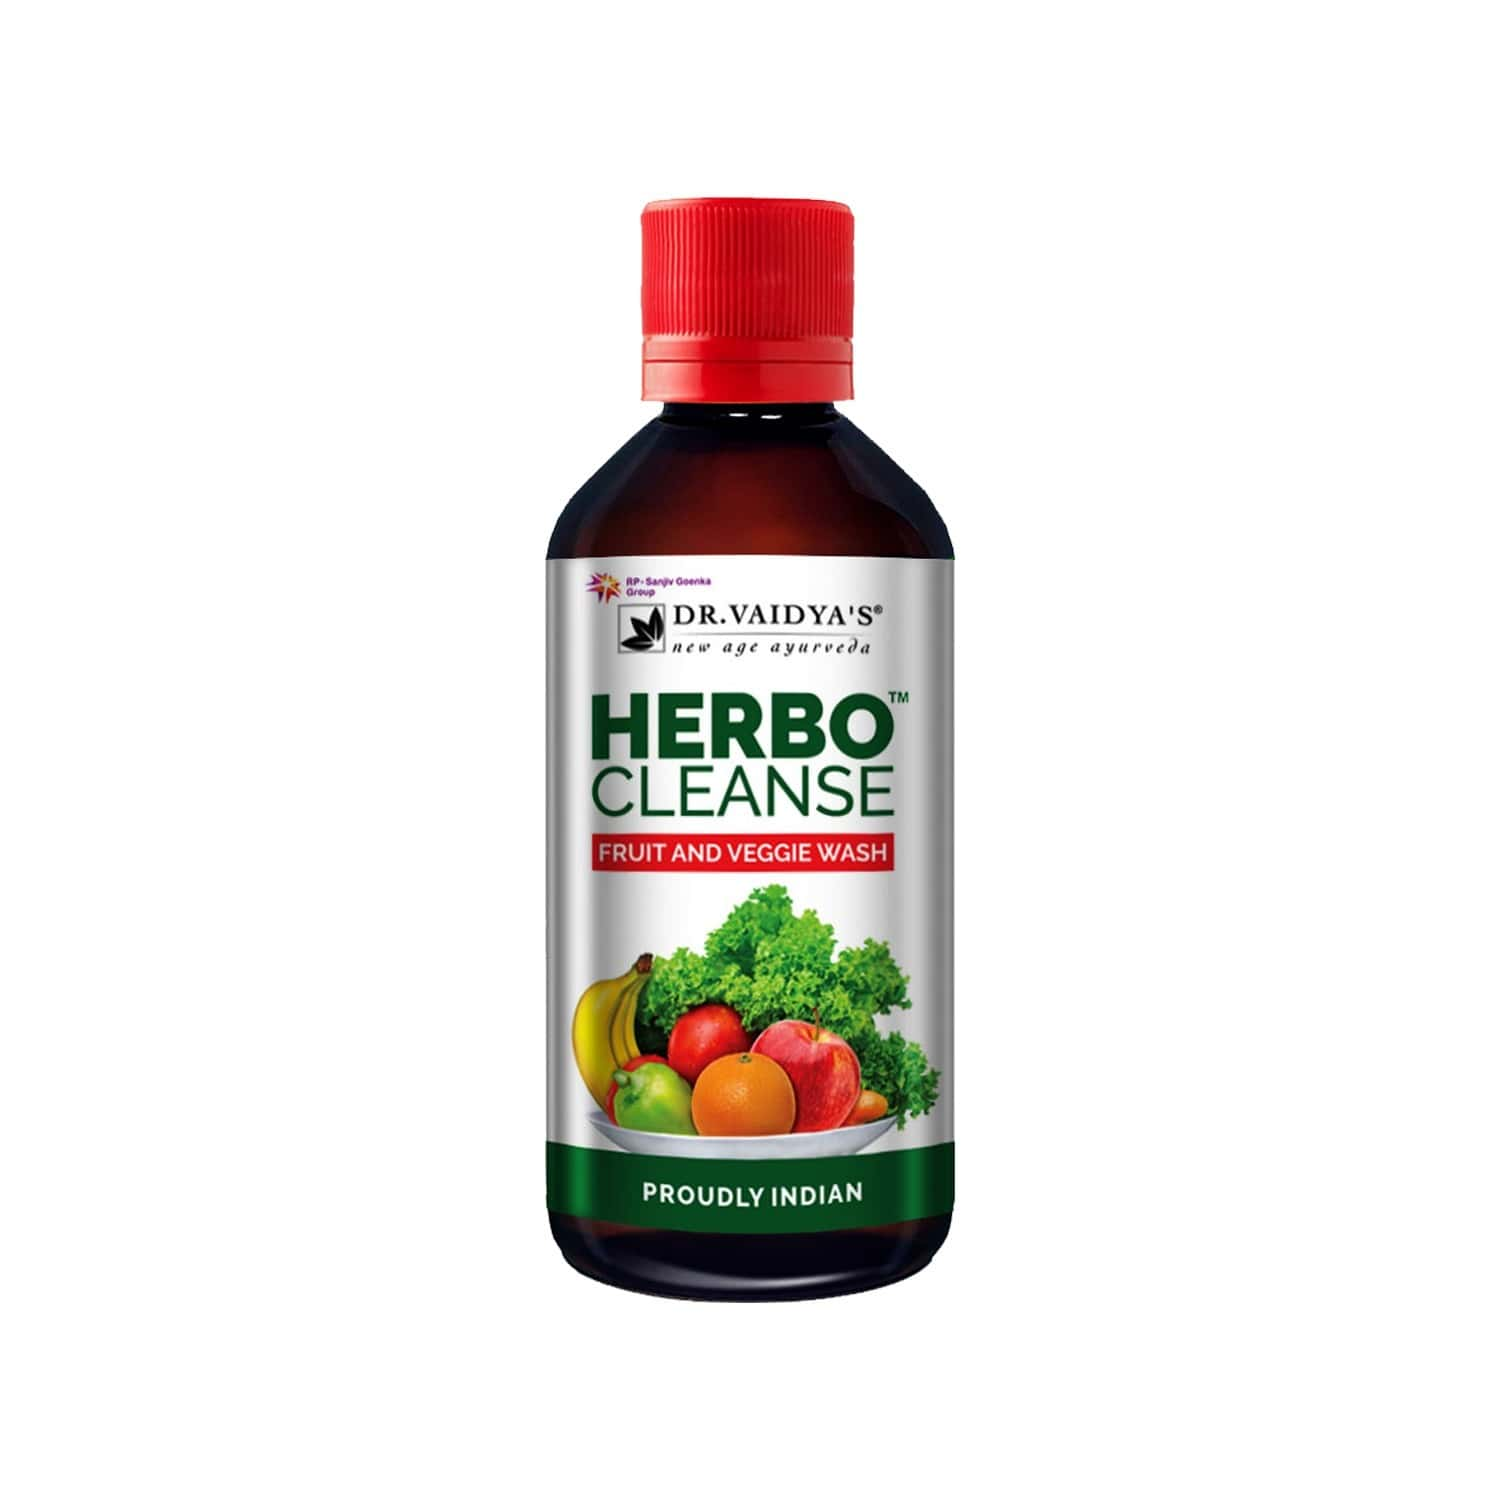 Dr. Vaidya's Herbocleanse Fruit And Veggie Wash |additional Cleanser For Fruits And Vegetables | 200 Ml Each (pack Of 2)